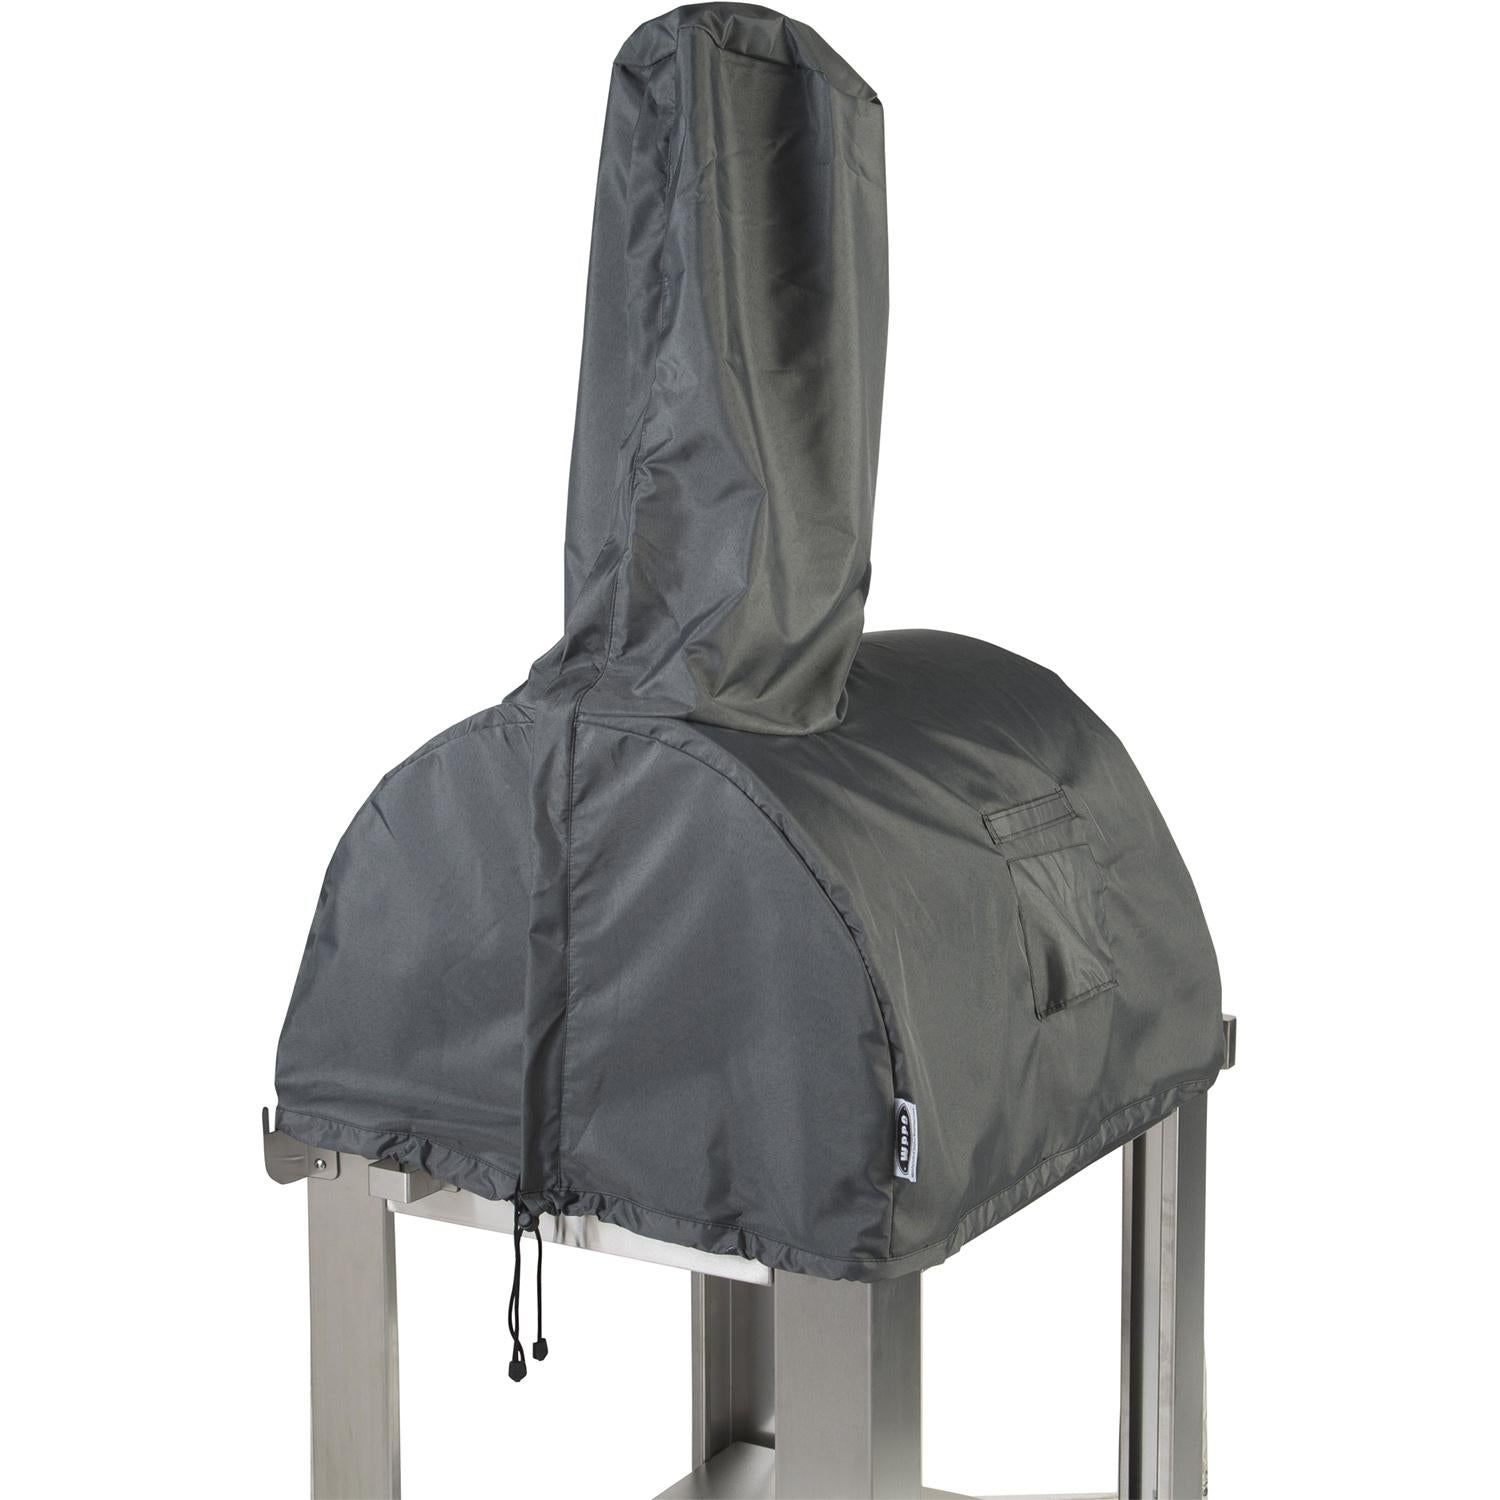 WPPO Pro Outdoor Pizza Oven Cover